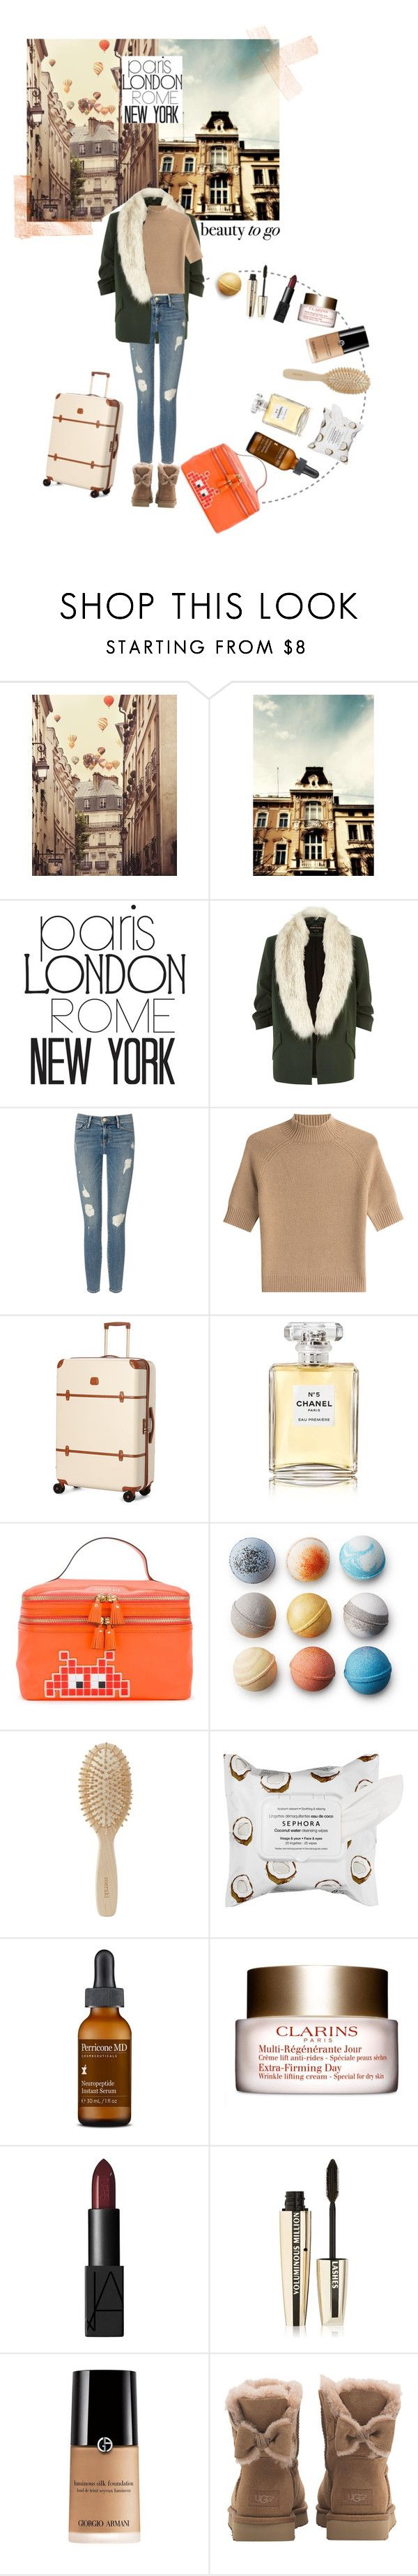 """travelbeauty"" by ozgeelfaba ❤ liked on Polyvore featuring WALL, River Island, Frame, Theory, Bric's, Chanel, Anya Hindmarch, Meraki, Sephora Collection and Perricone MD"